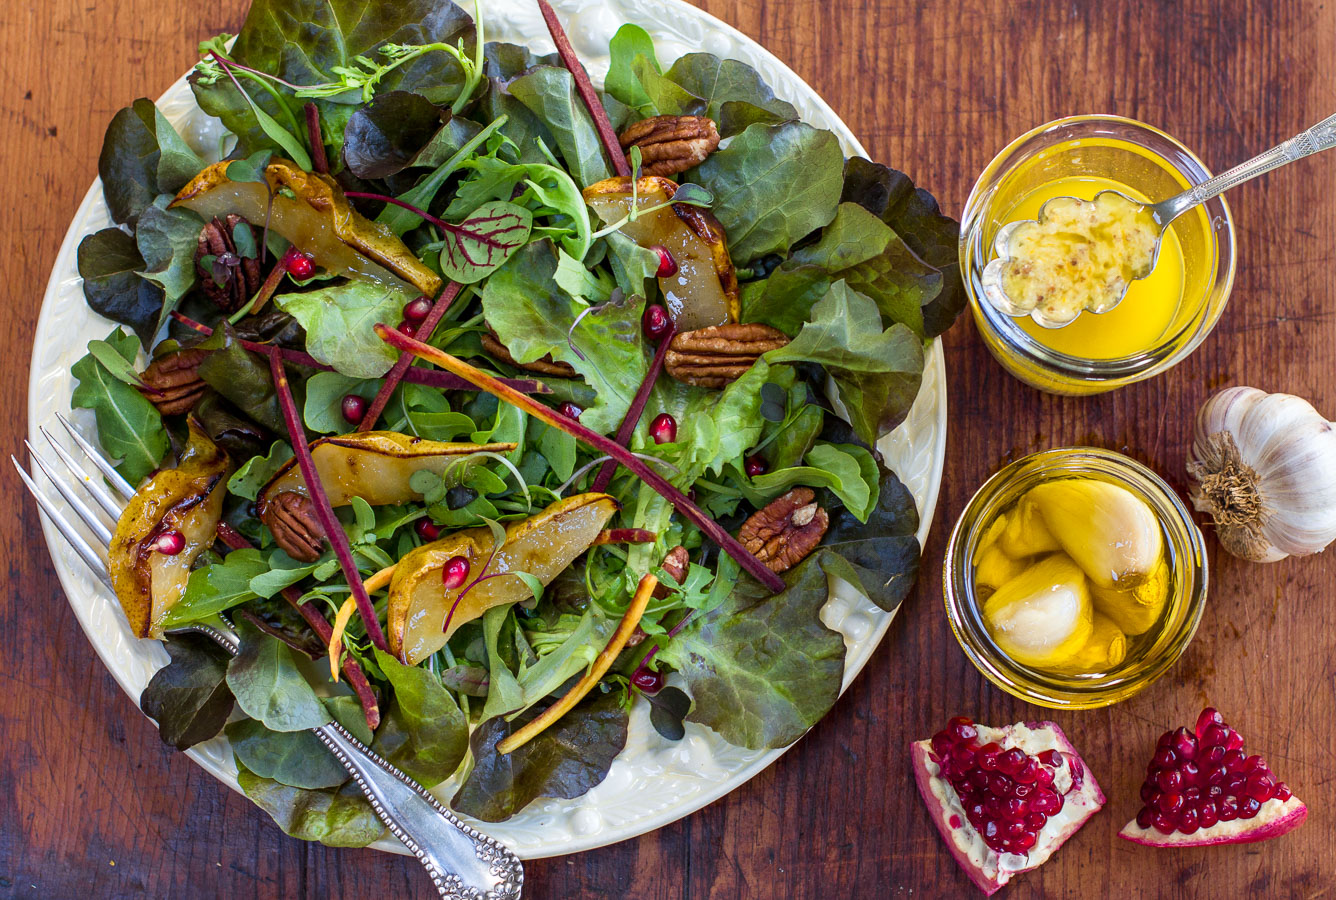 A light Fall Salad with crunchy textures dressed with a Zesty-Lemony Vinaigrette with Confit Garlic